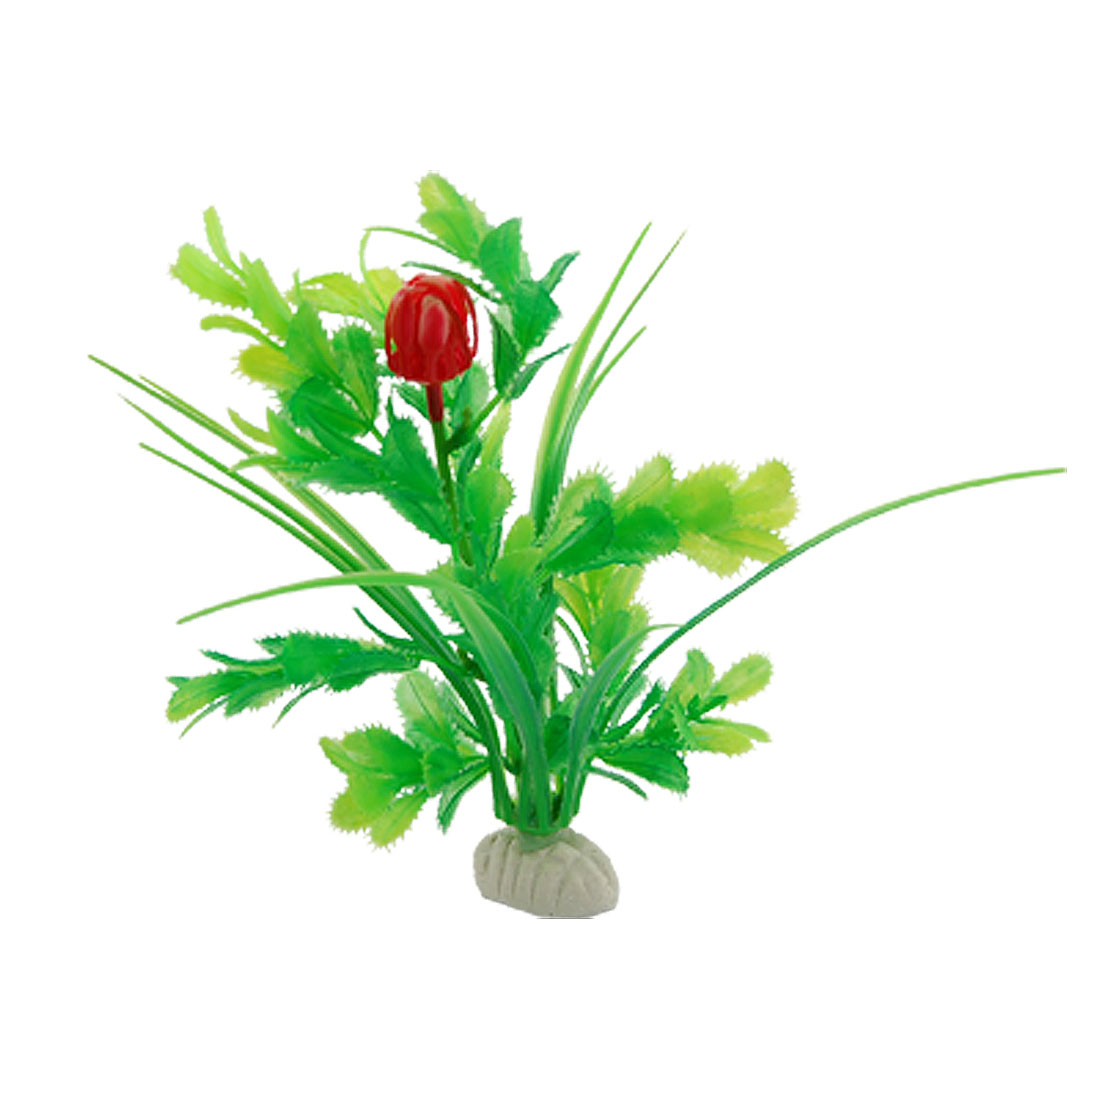 Aquarium Green Serrate Leaf Red Flower Artificial Plants 3 Pcs